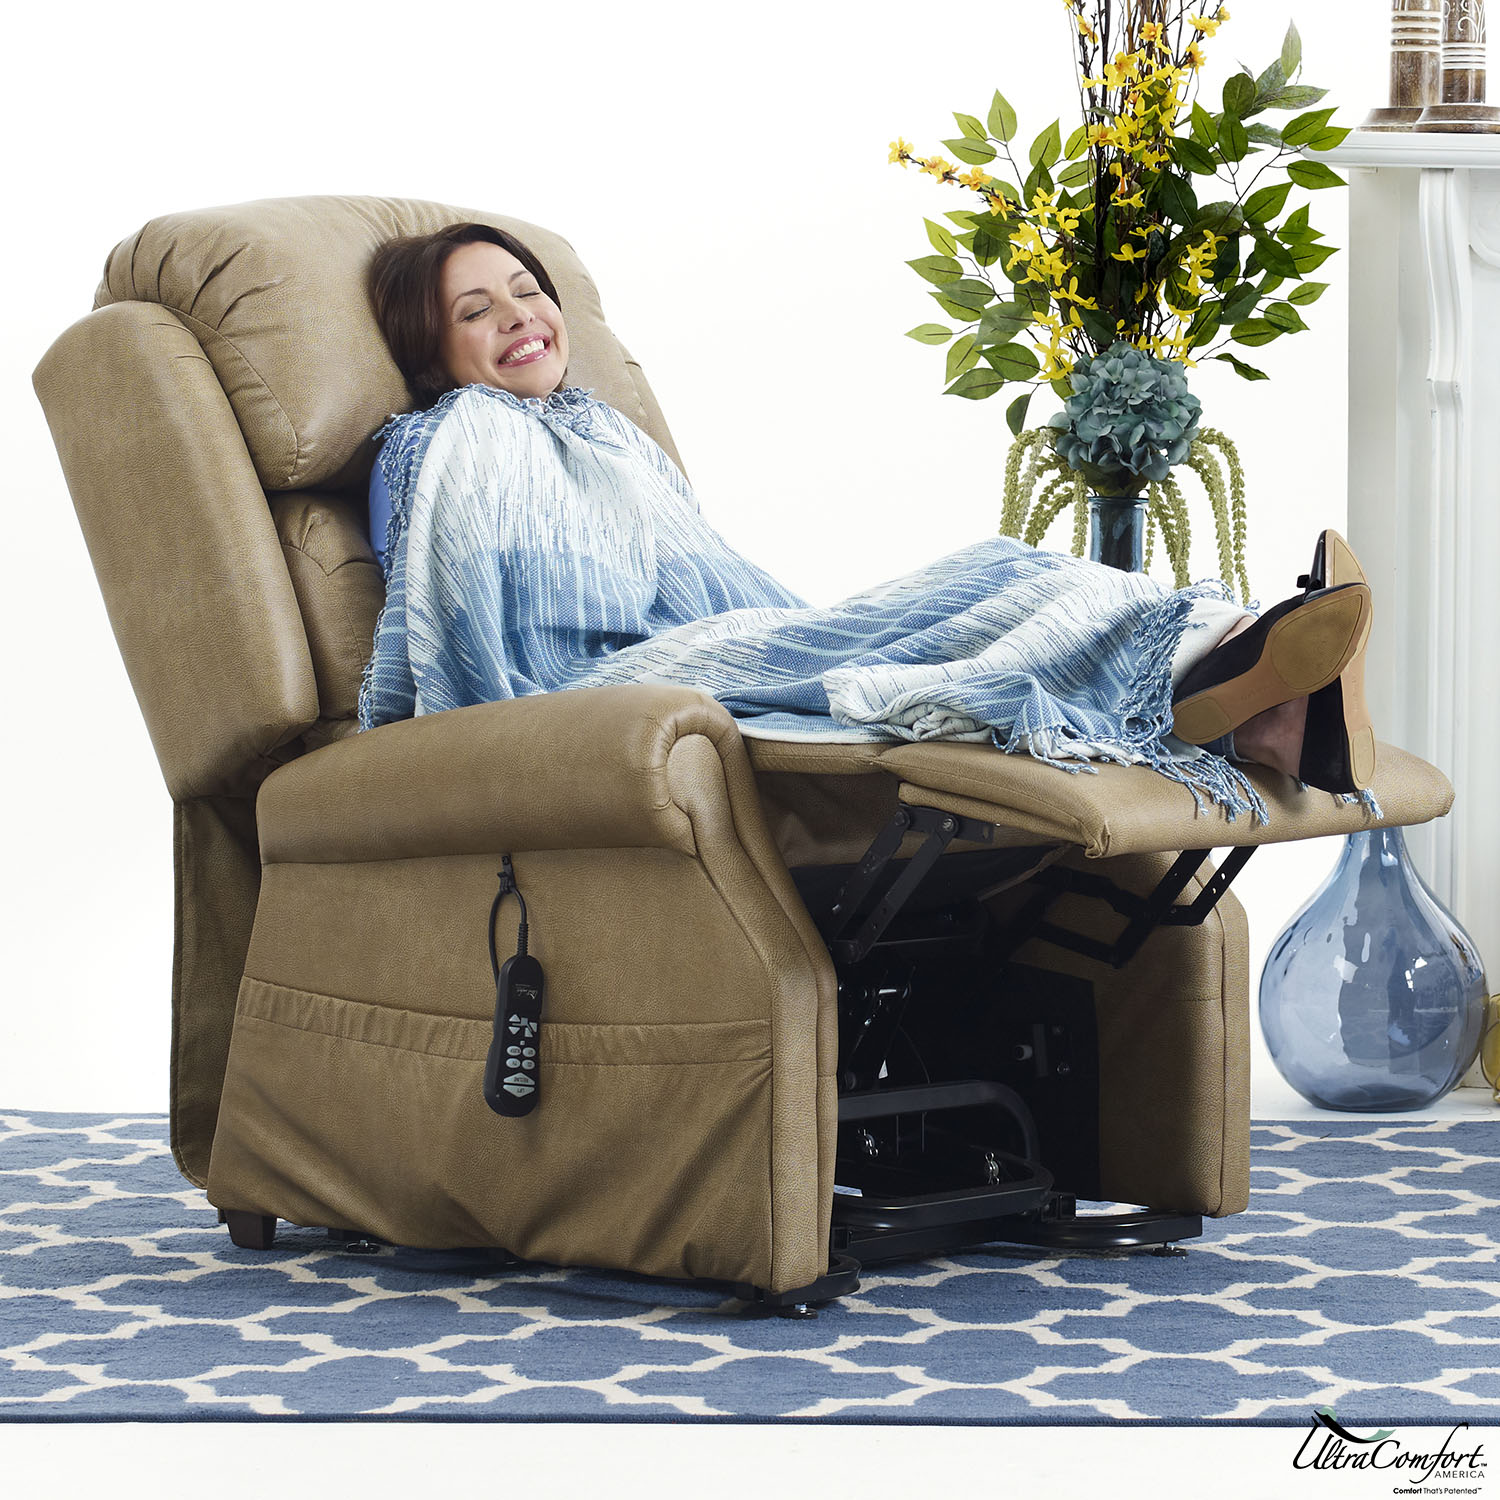 Woman in a zero gravity UltraComfort power recliner chair